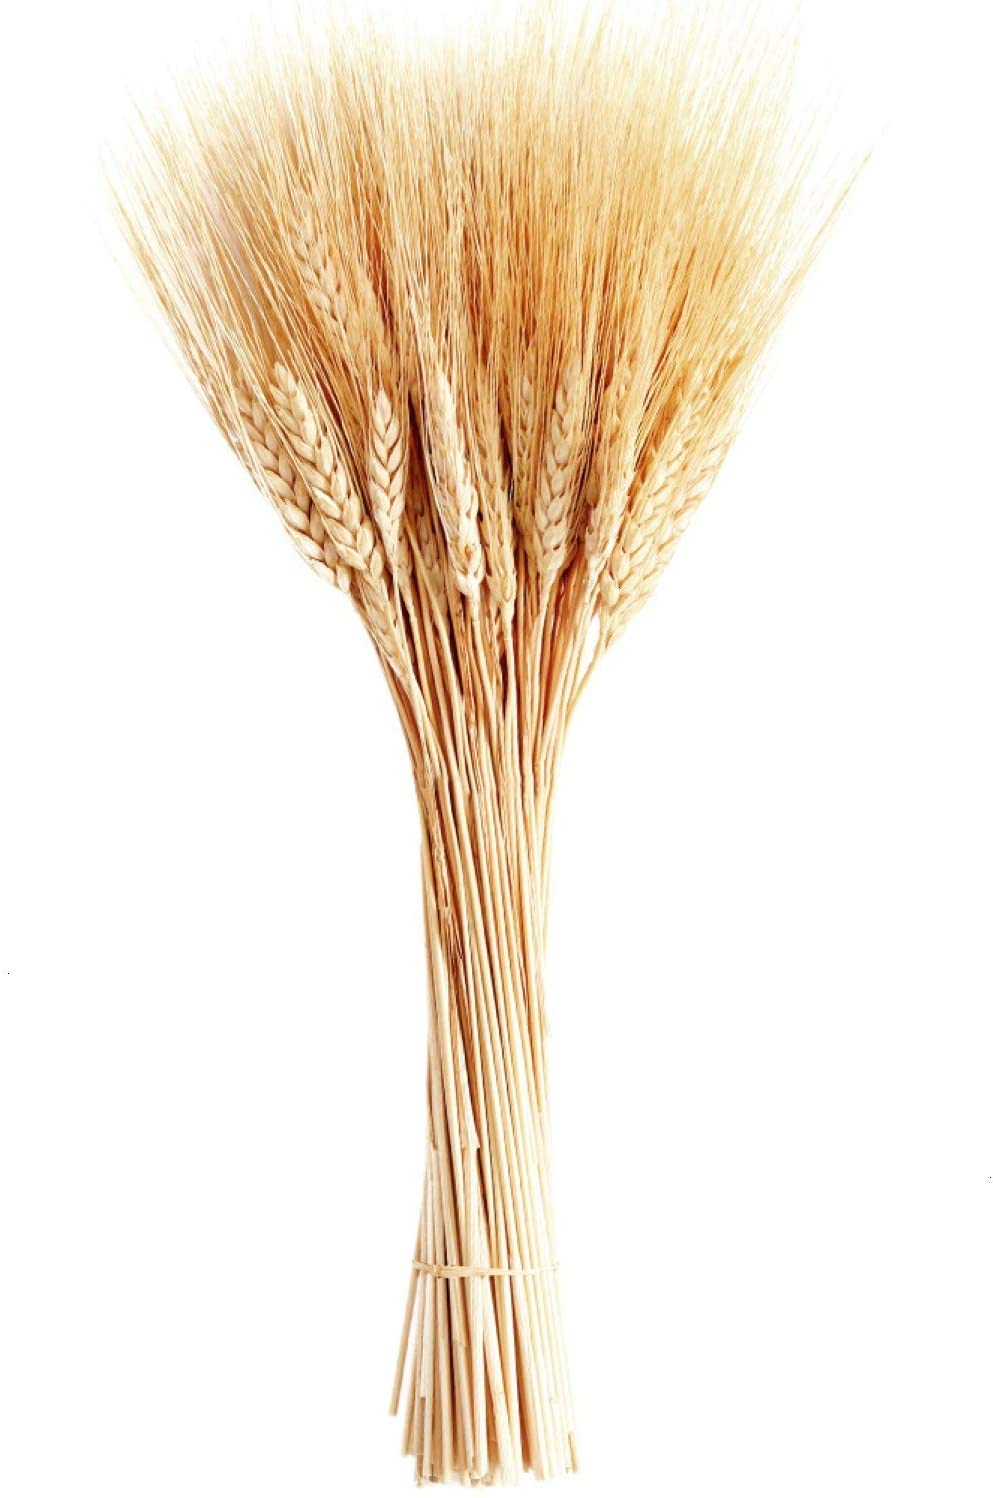 June Fox Dried Wheat Stalks, 100 Stems Wheat Sheaves for Decorating Wedding Table Home Kitchen (15.7 Inches)